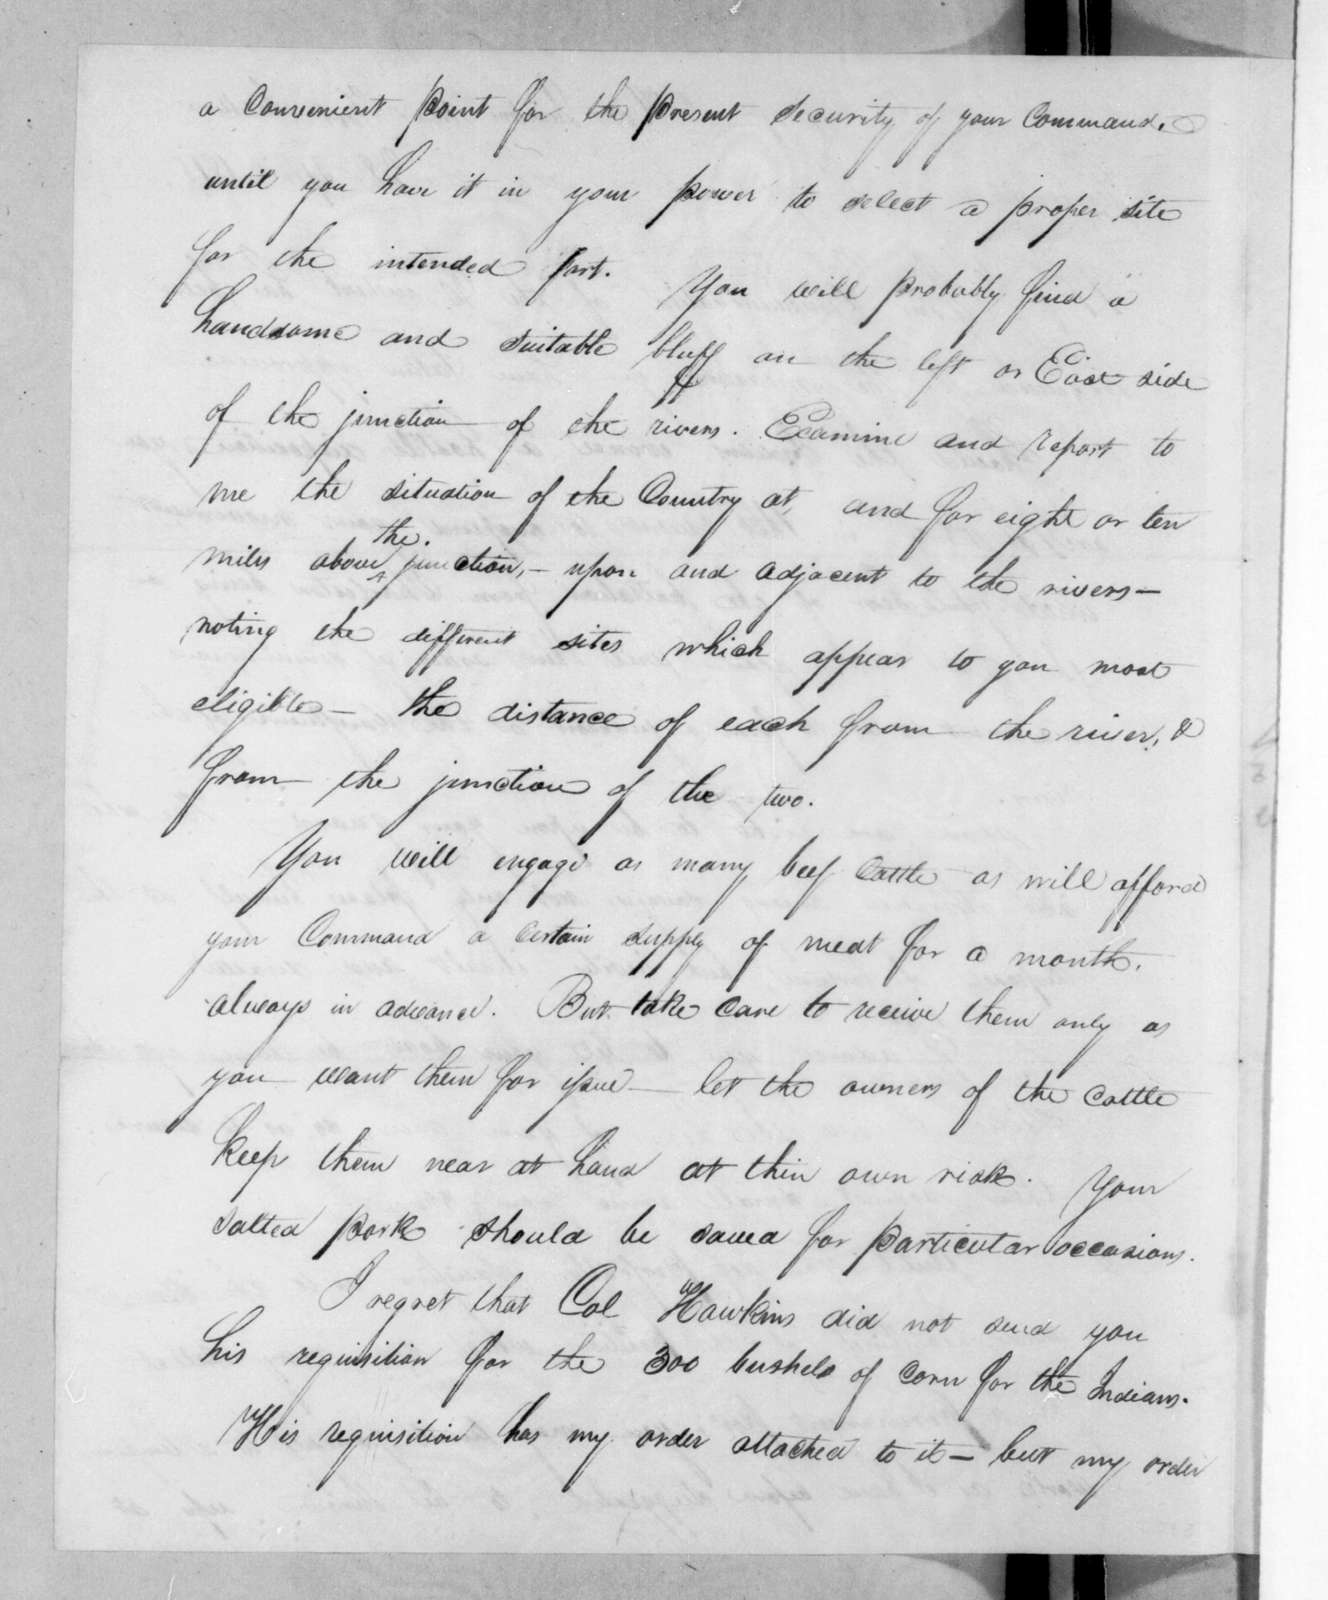 Edmund Pendleton Gaines to Duncan Lamont Clinch, April 28, 1816